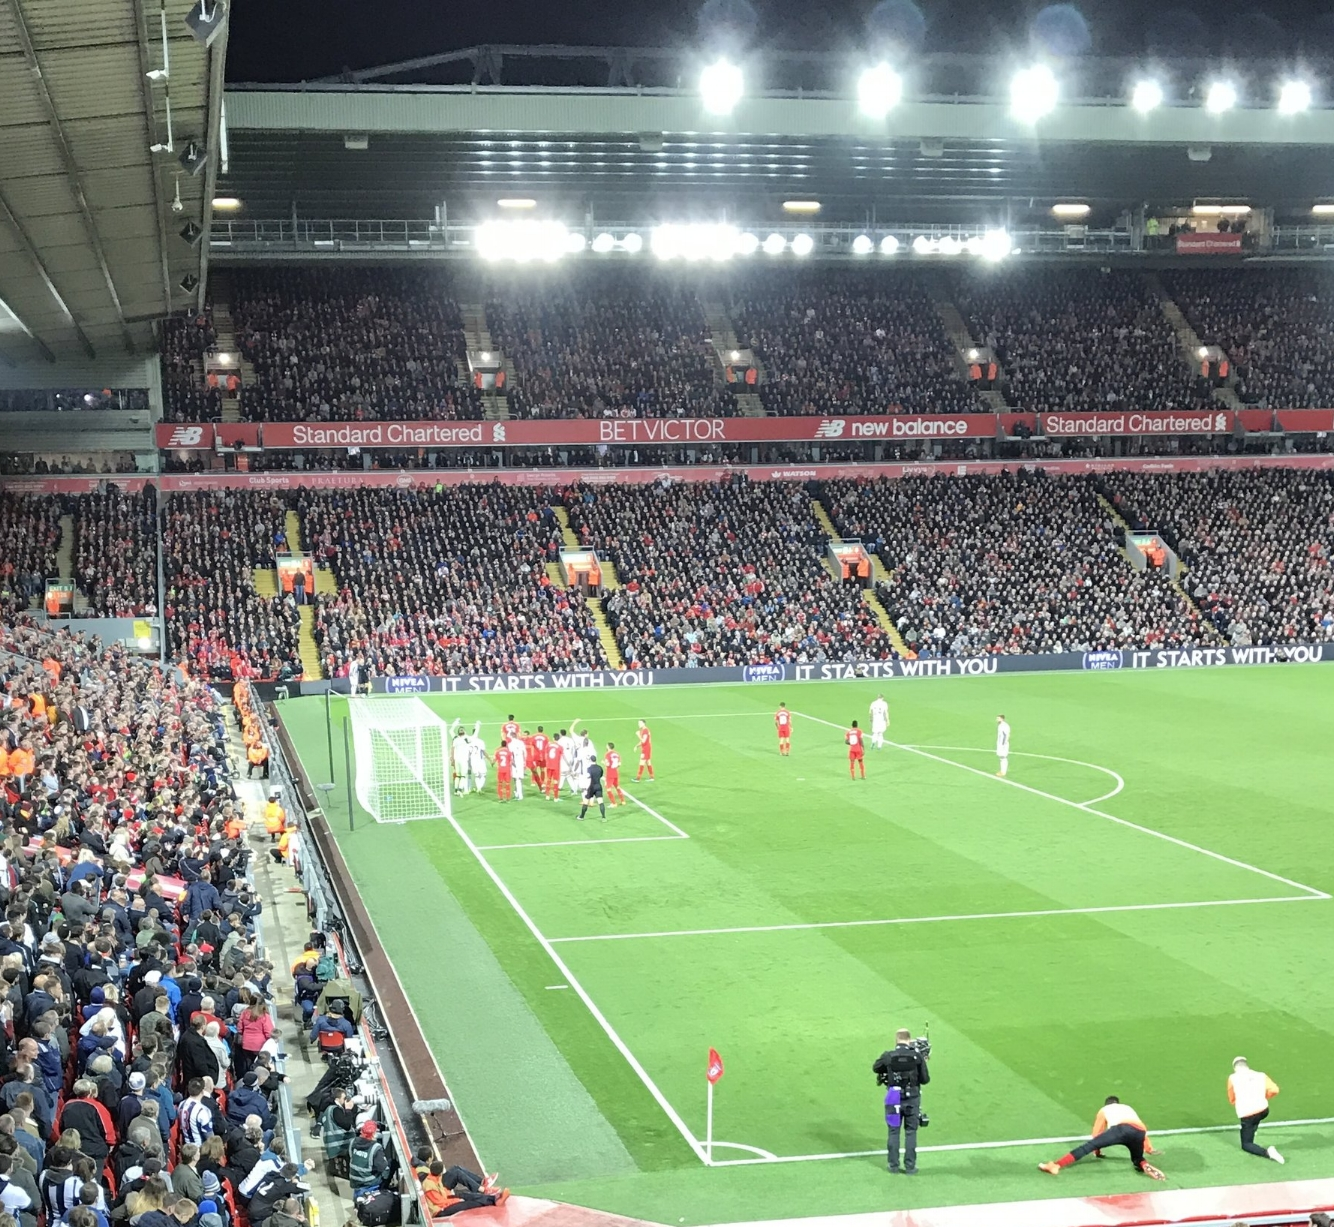 Liverpool defending zonal, an in-swinging corner,against a bigger West Bromwich Albion side.